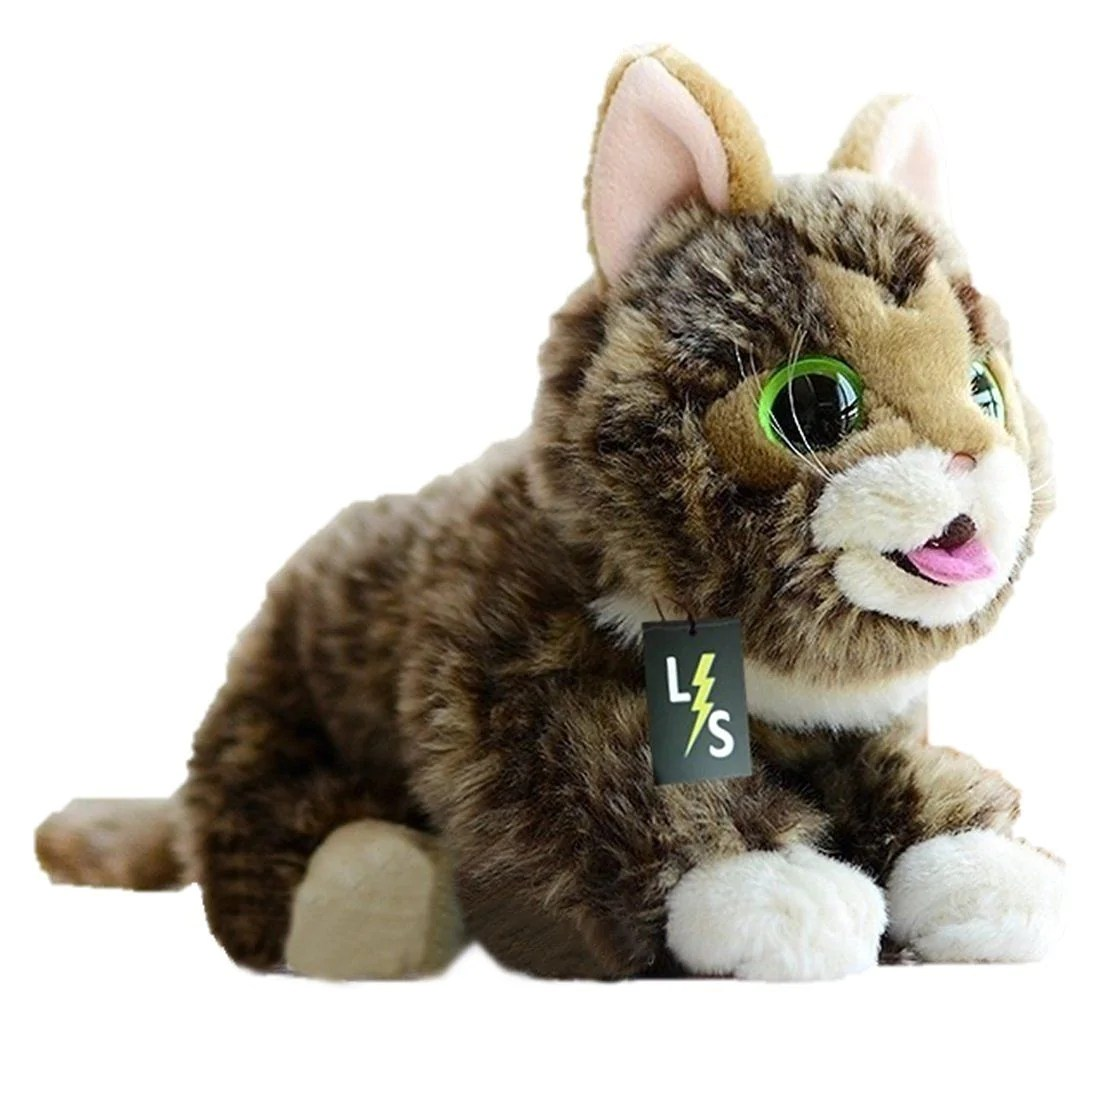 Cat Plush Toy Lightningstore Adorable Cute Big Eyes Cat Lynx Doll Realistic Looking Stuffed Animal Plush Toys Plushie Children S Gifts Animals